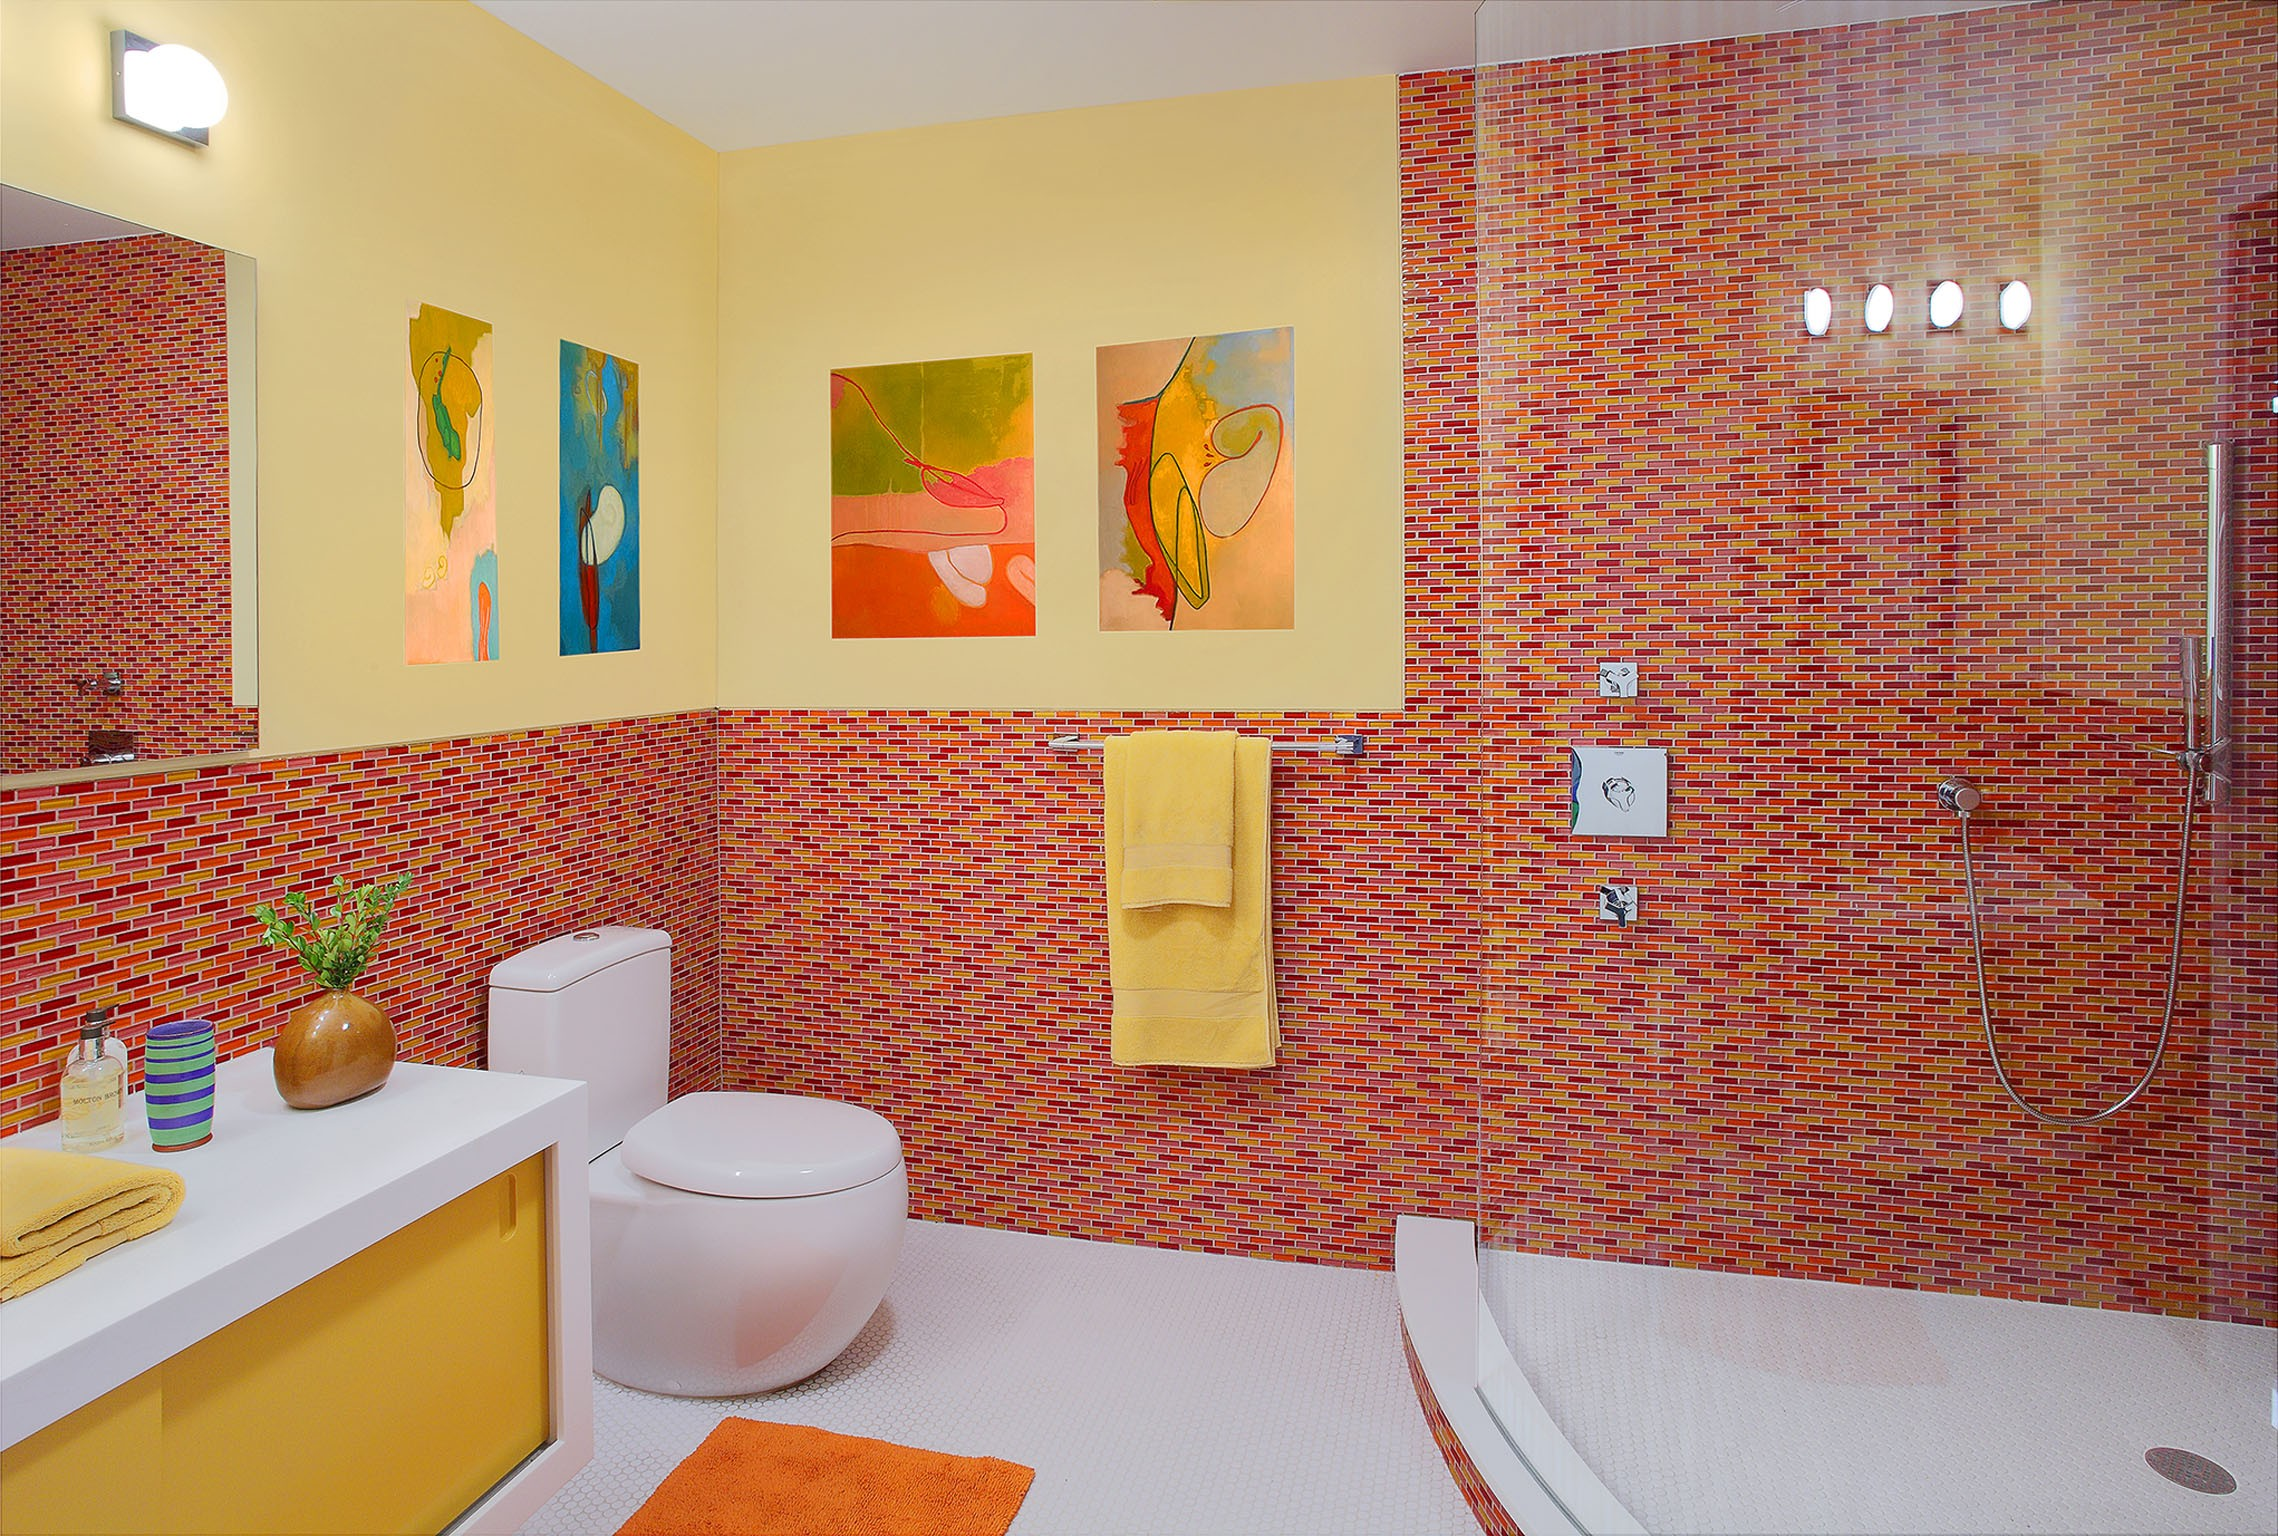 Kids Bathroom Tile 9 Bathrooms That Make Tile Look Trendy Huffpost